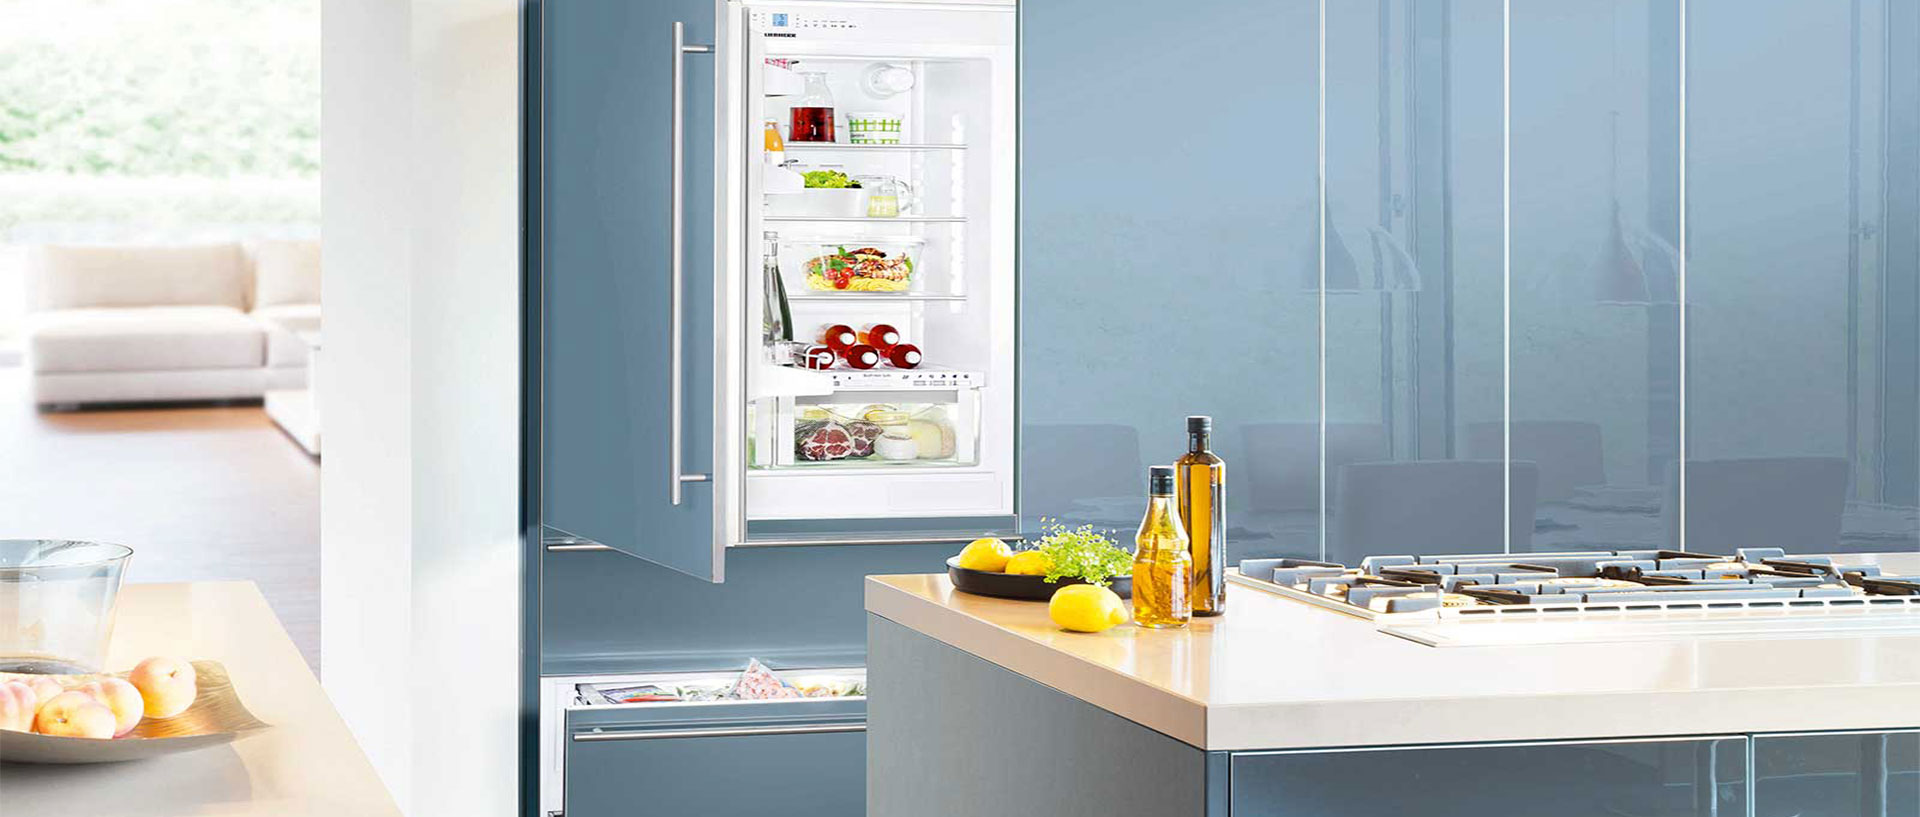 panel ready built-in refrigerator